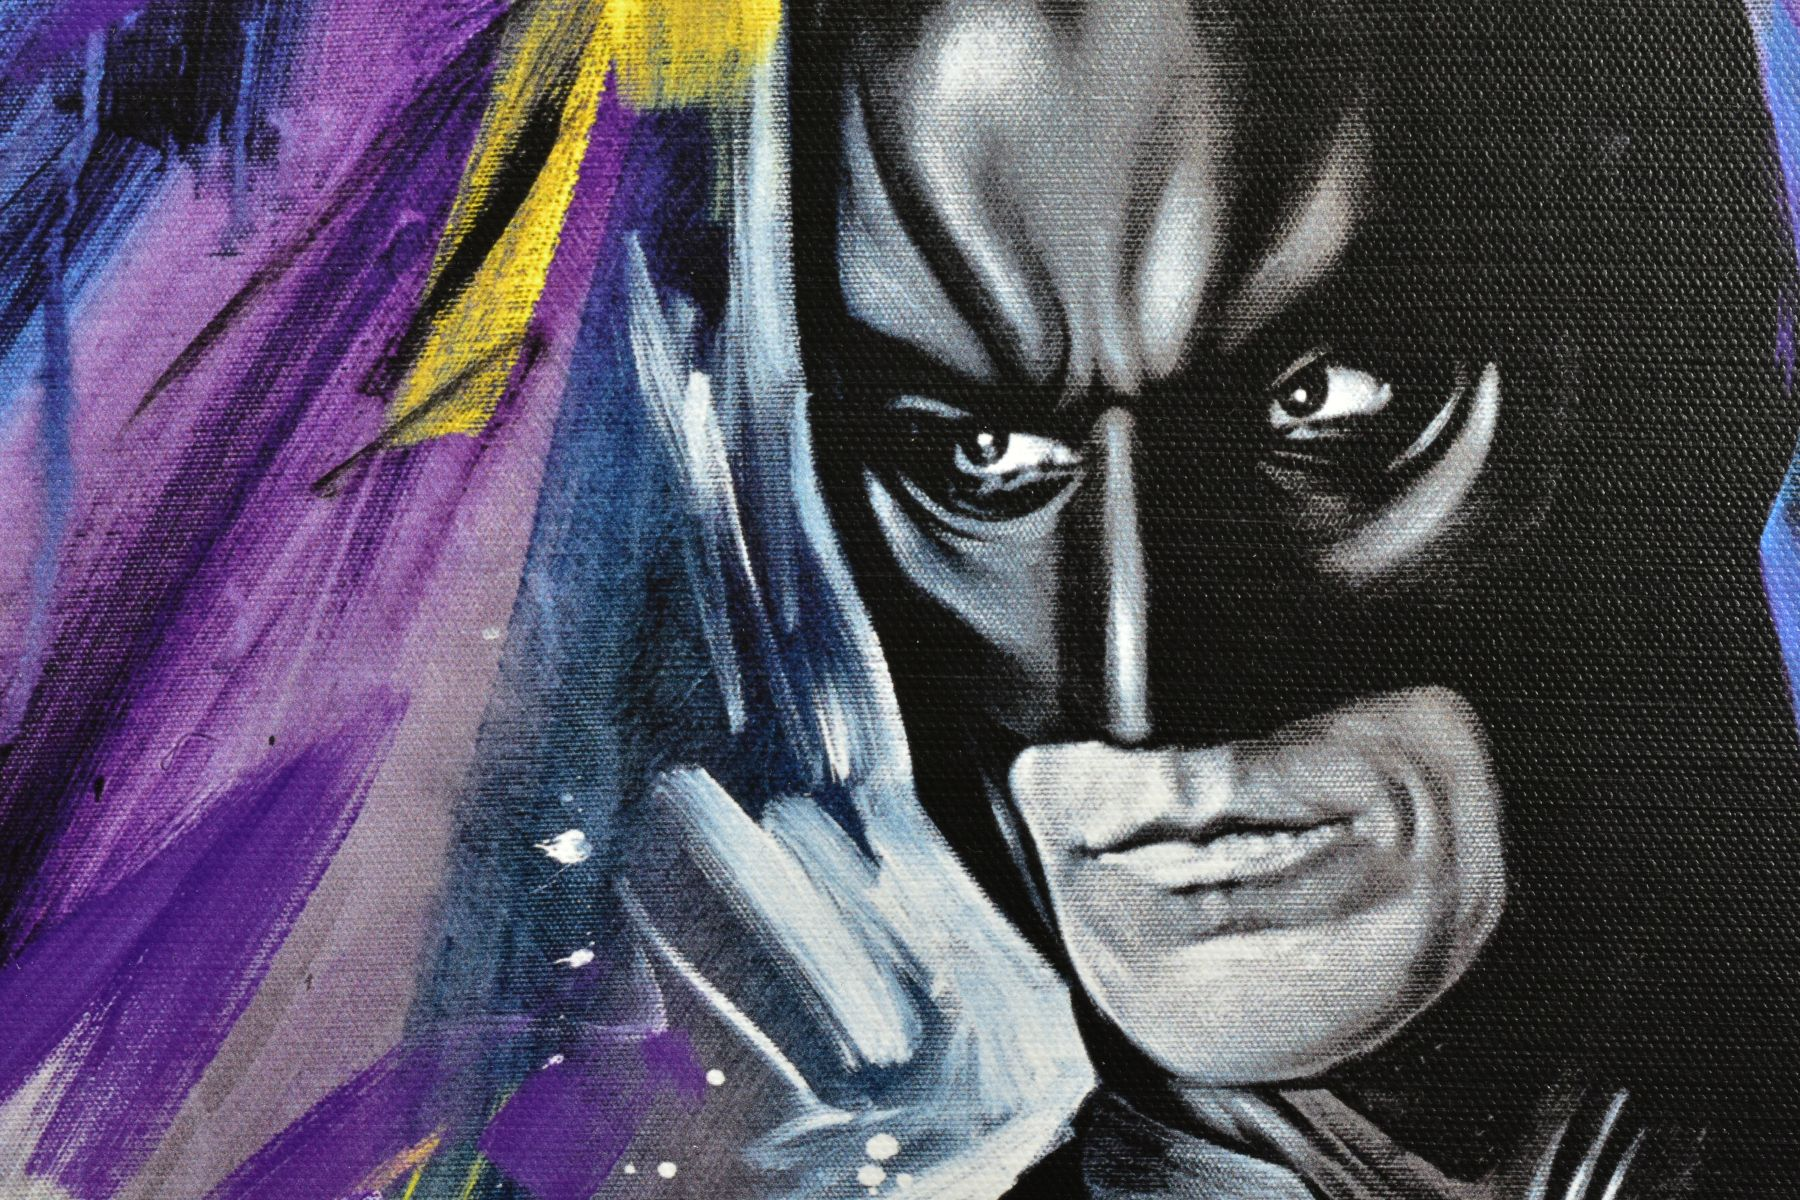 JEN ALLEN (BRITISH 1979), 'Silent Guardian', a Limited Edition print of Batman, 10/195, signed lower - Image 3 of 6